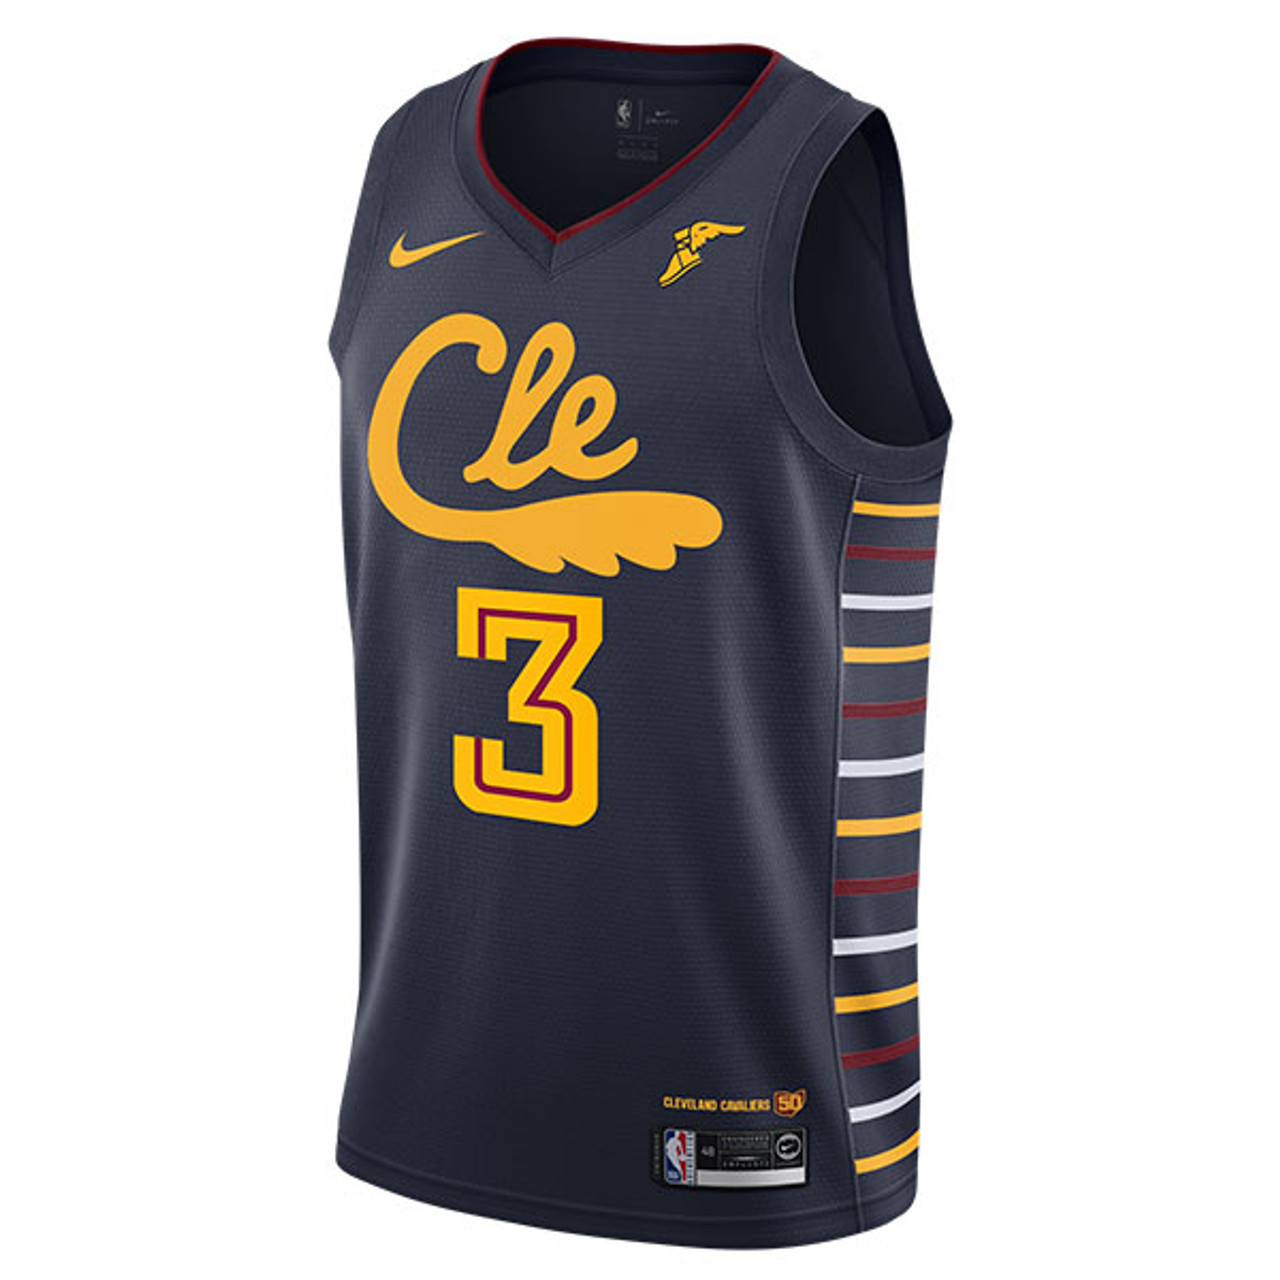 [CLE] Andre Drummond Jersey with Wingfoot